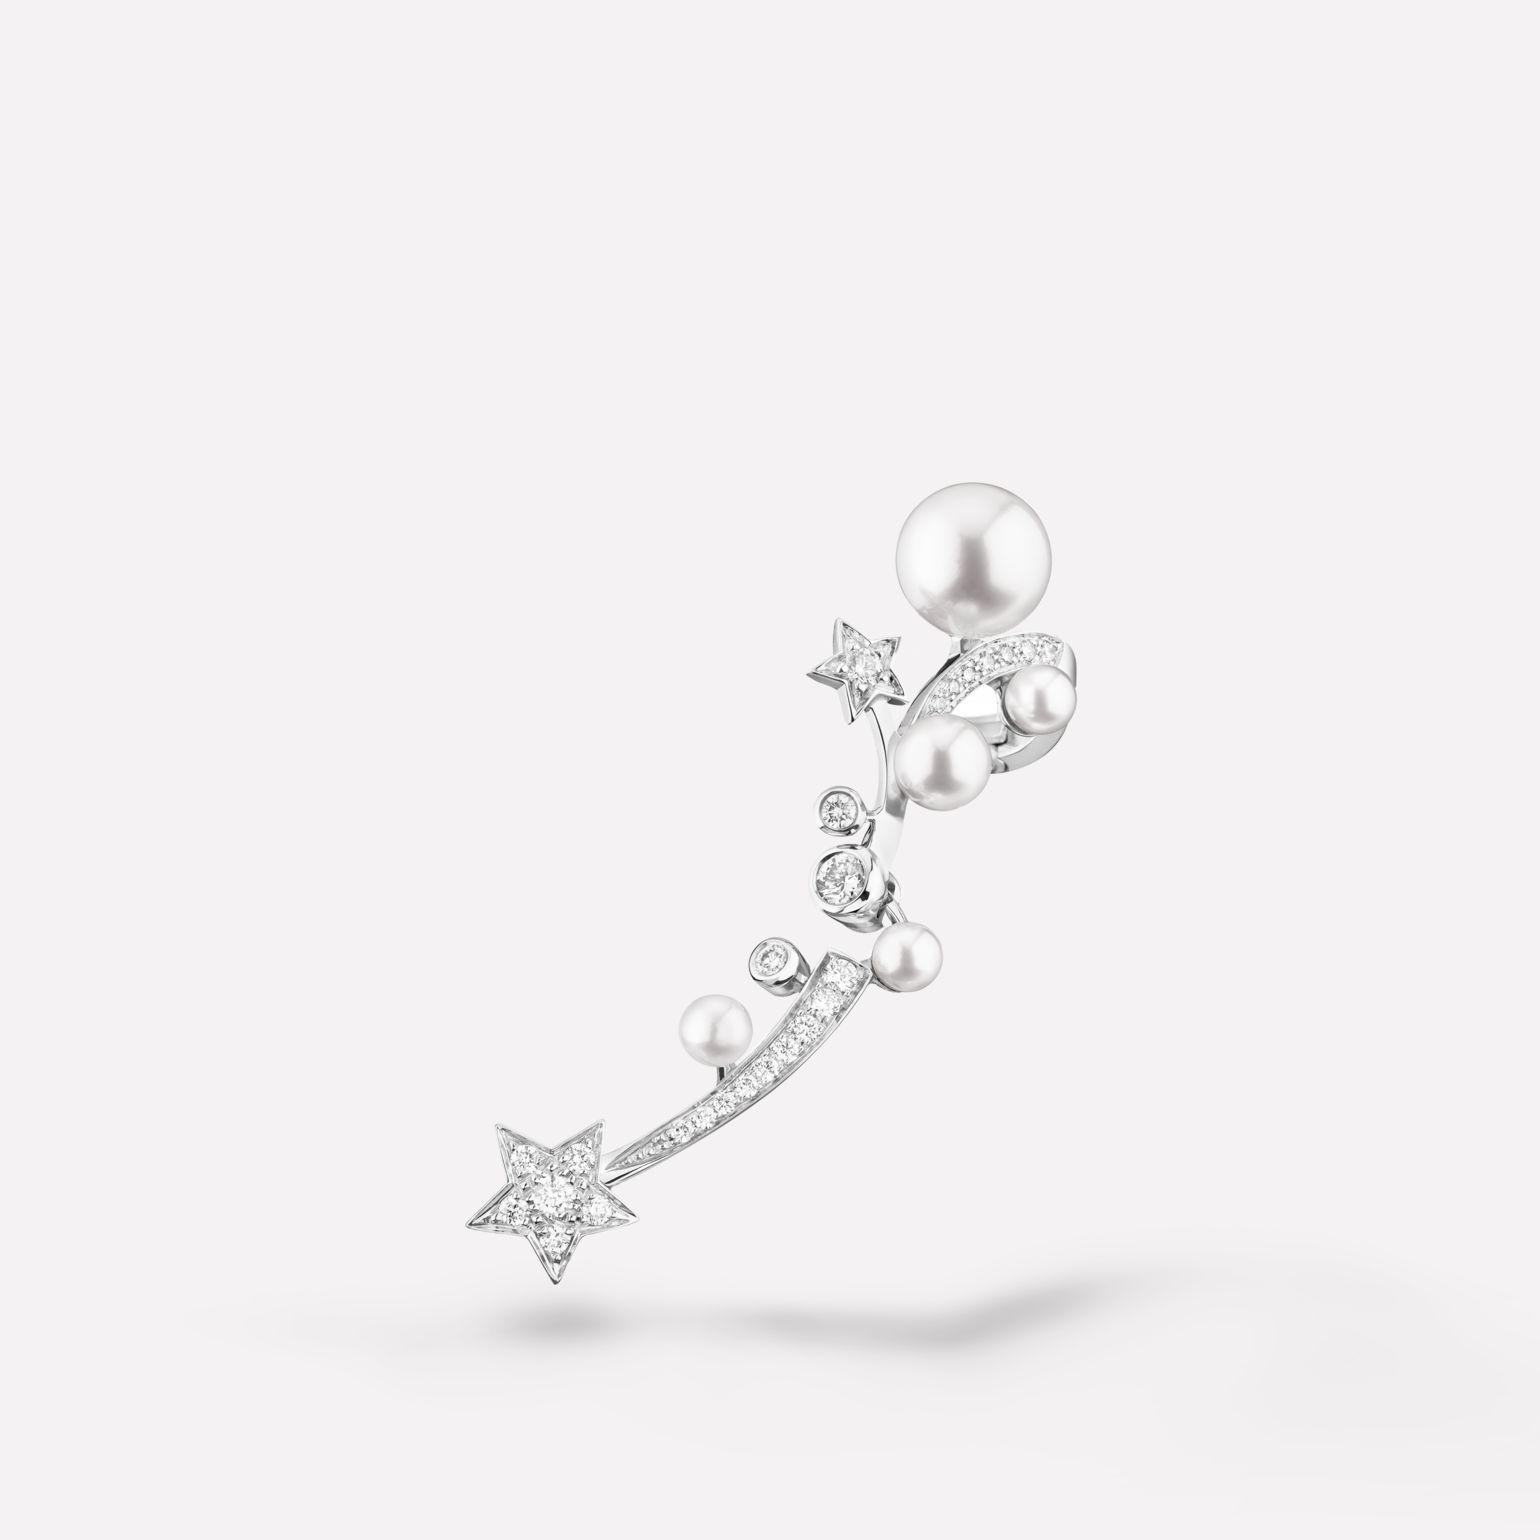 Comète earring Shooting star single earring in 18K white gold, diamonds and cultured pearls